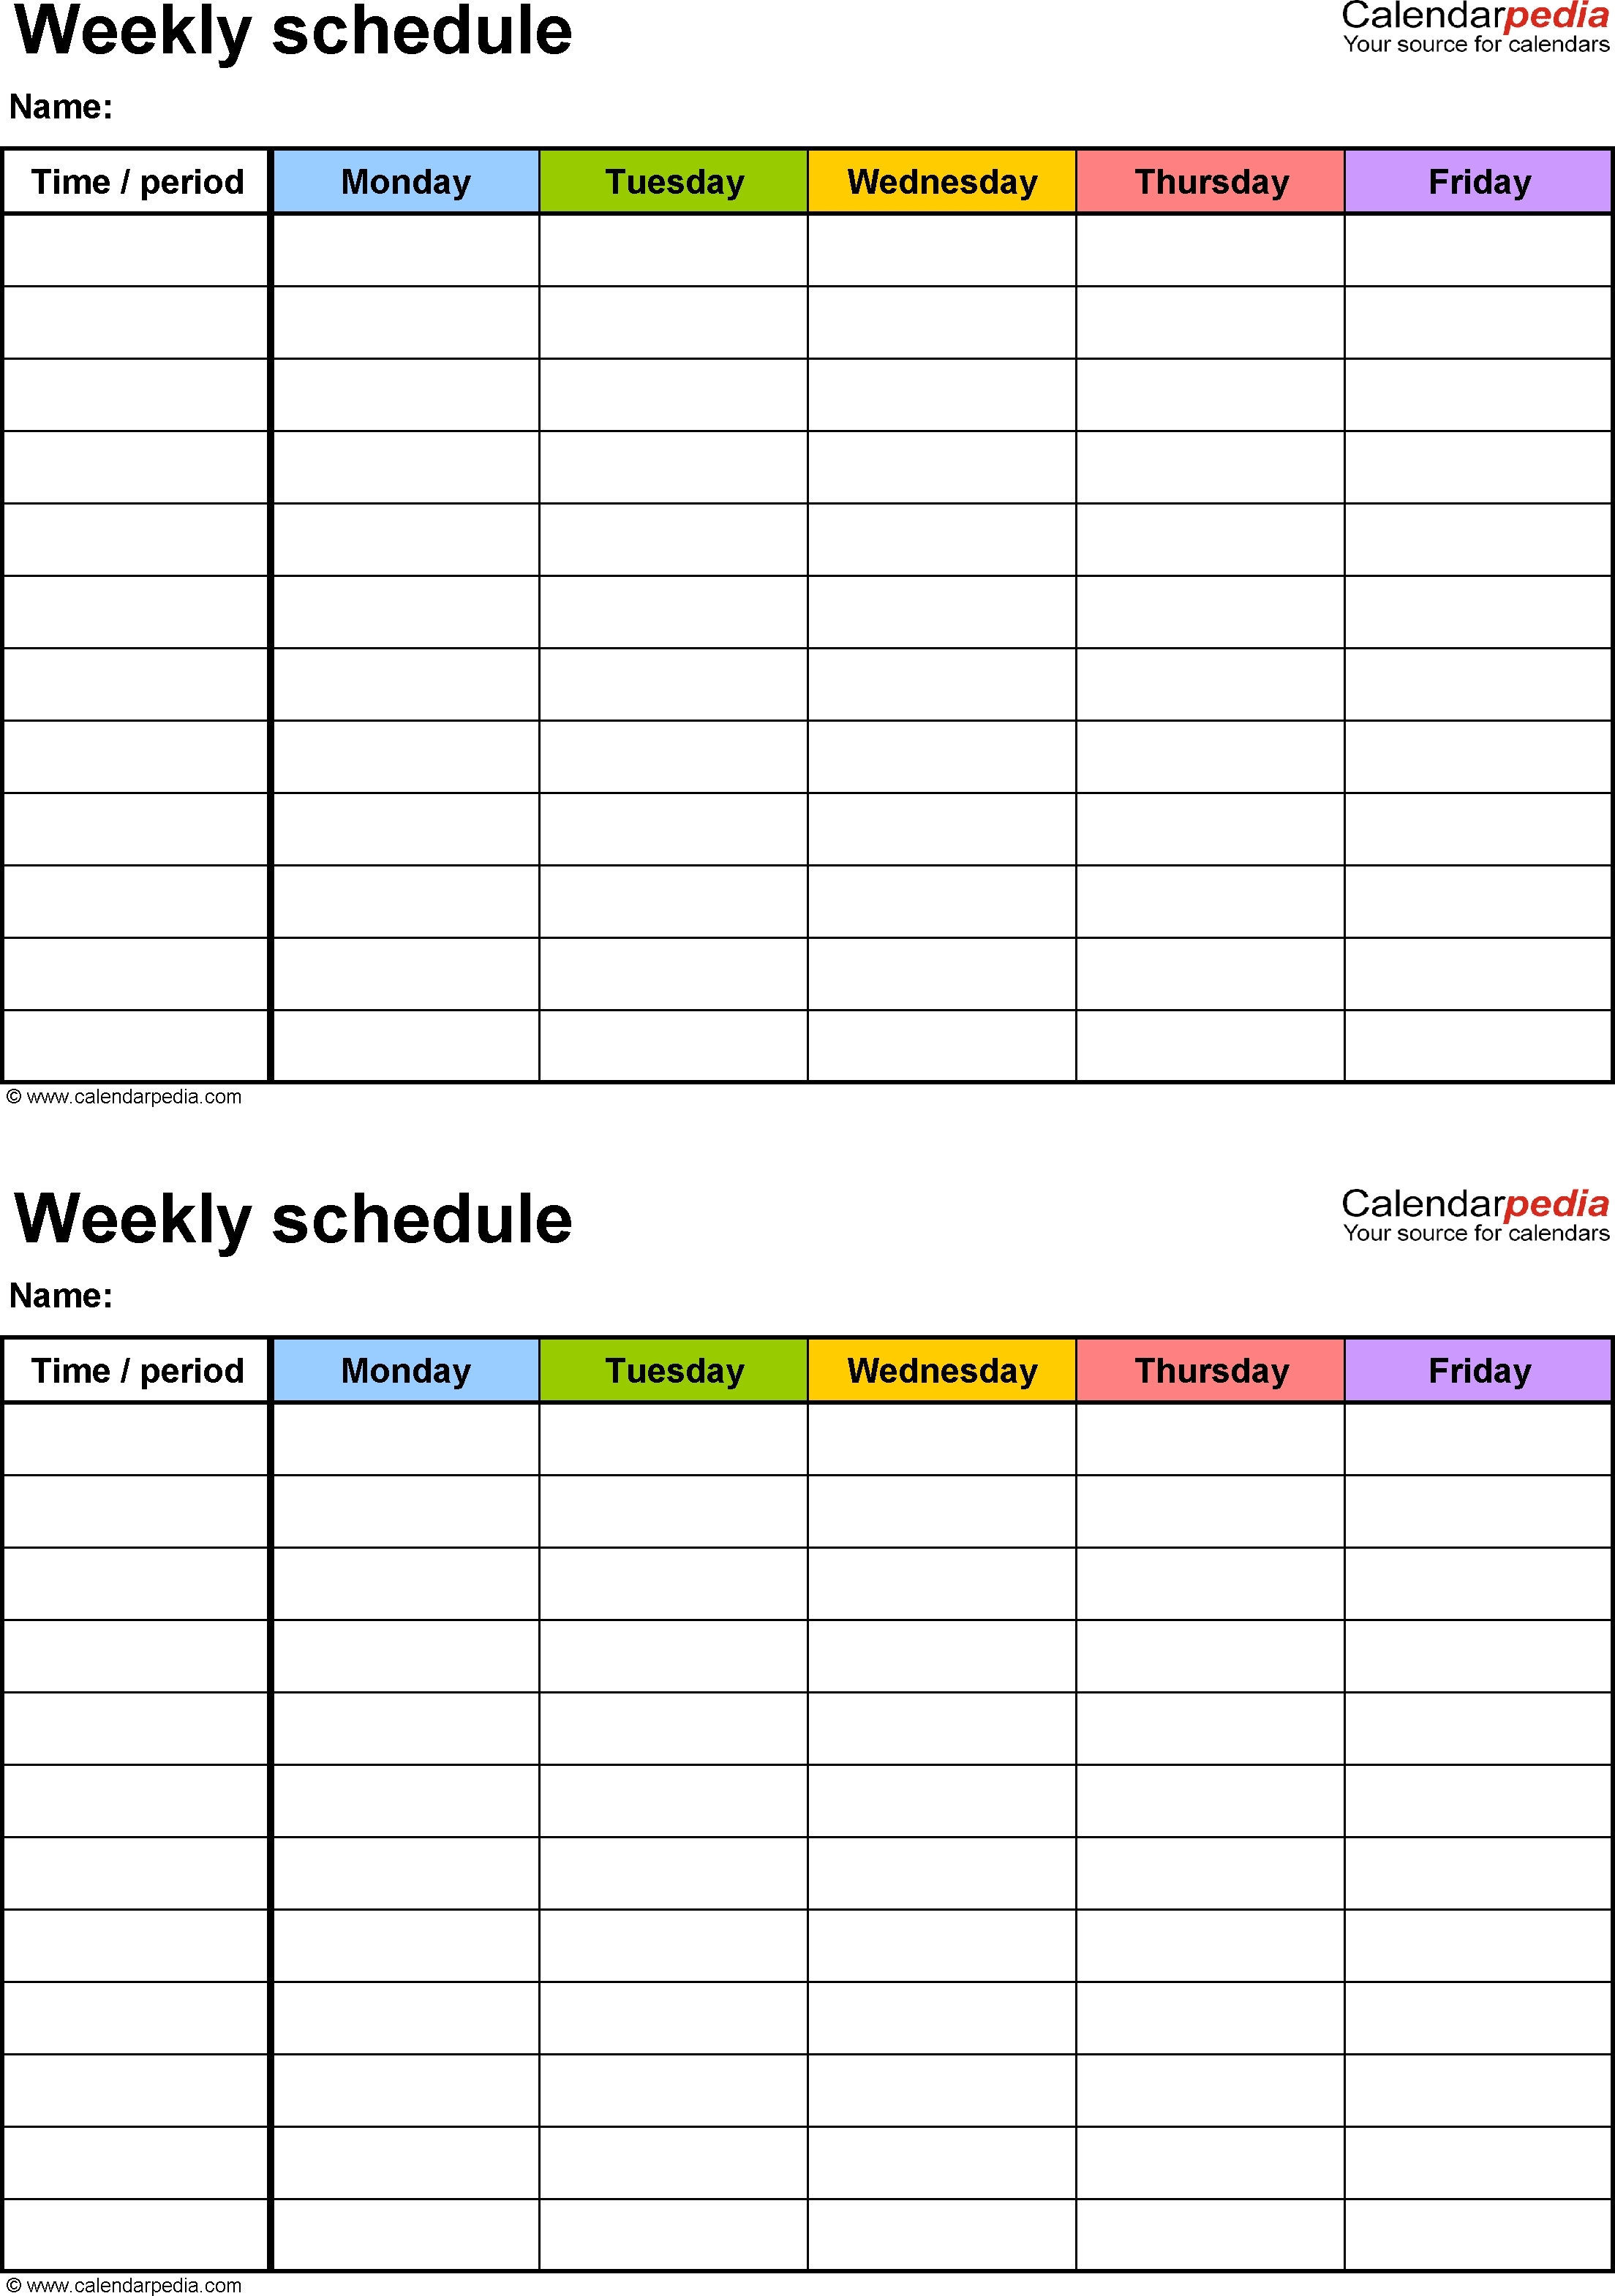 Free Weekly Schedule Templates For Word 18 Templates #2024637040001 pertaining to Two Week Blank Calendar Template